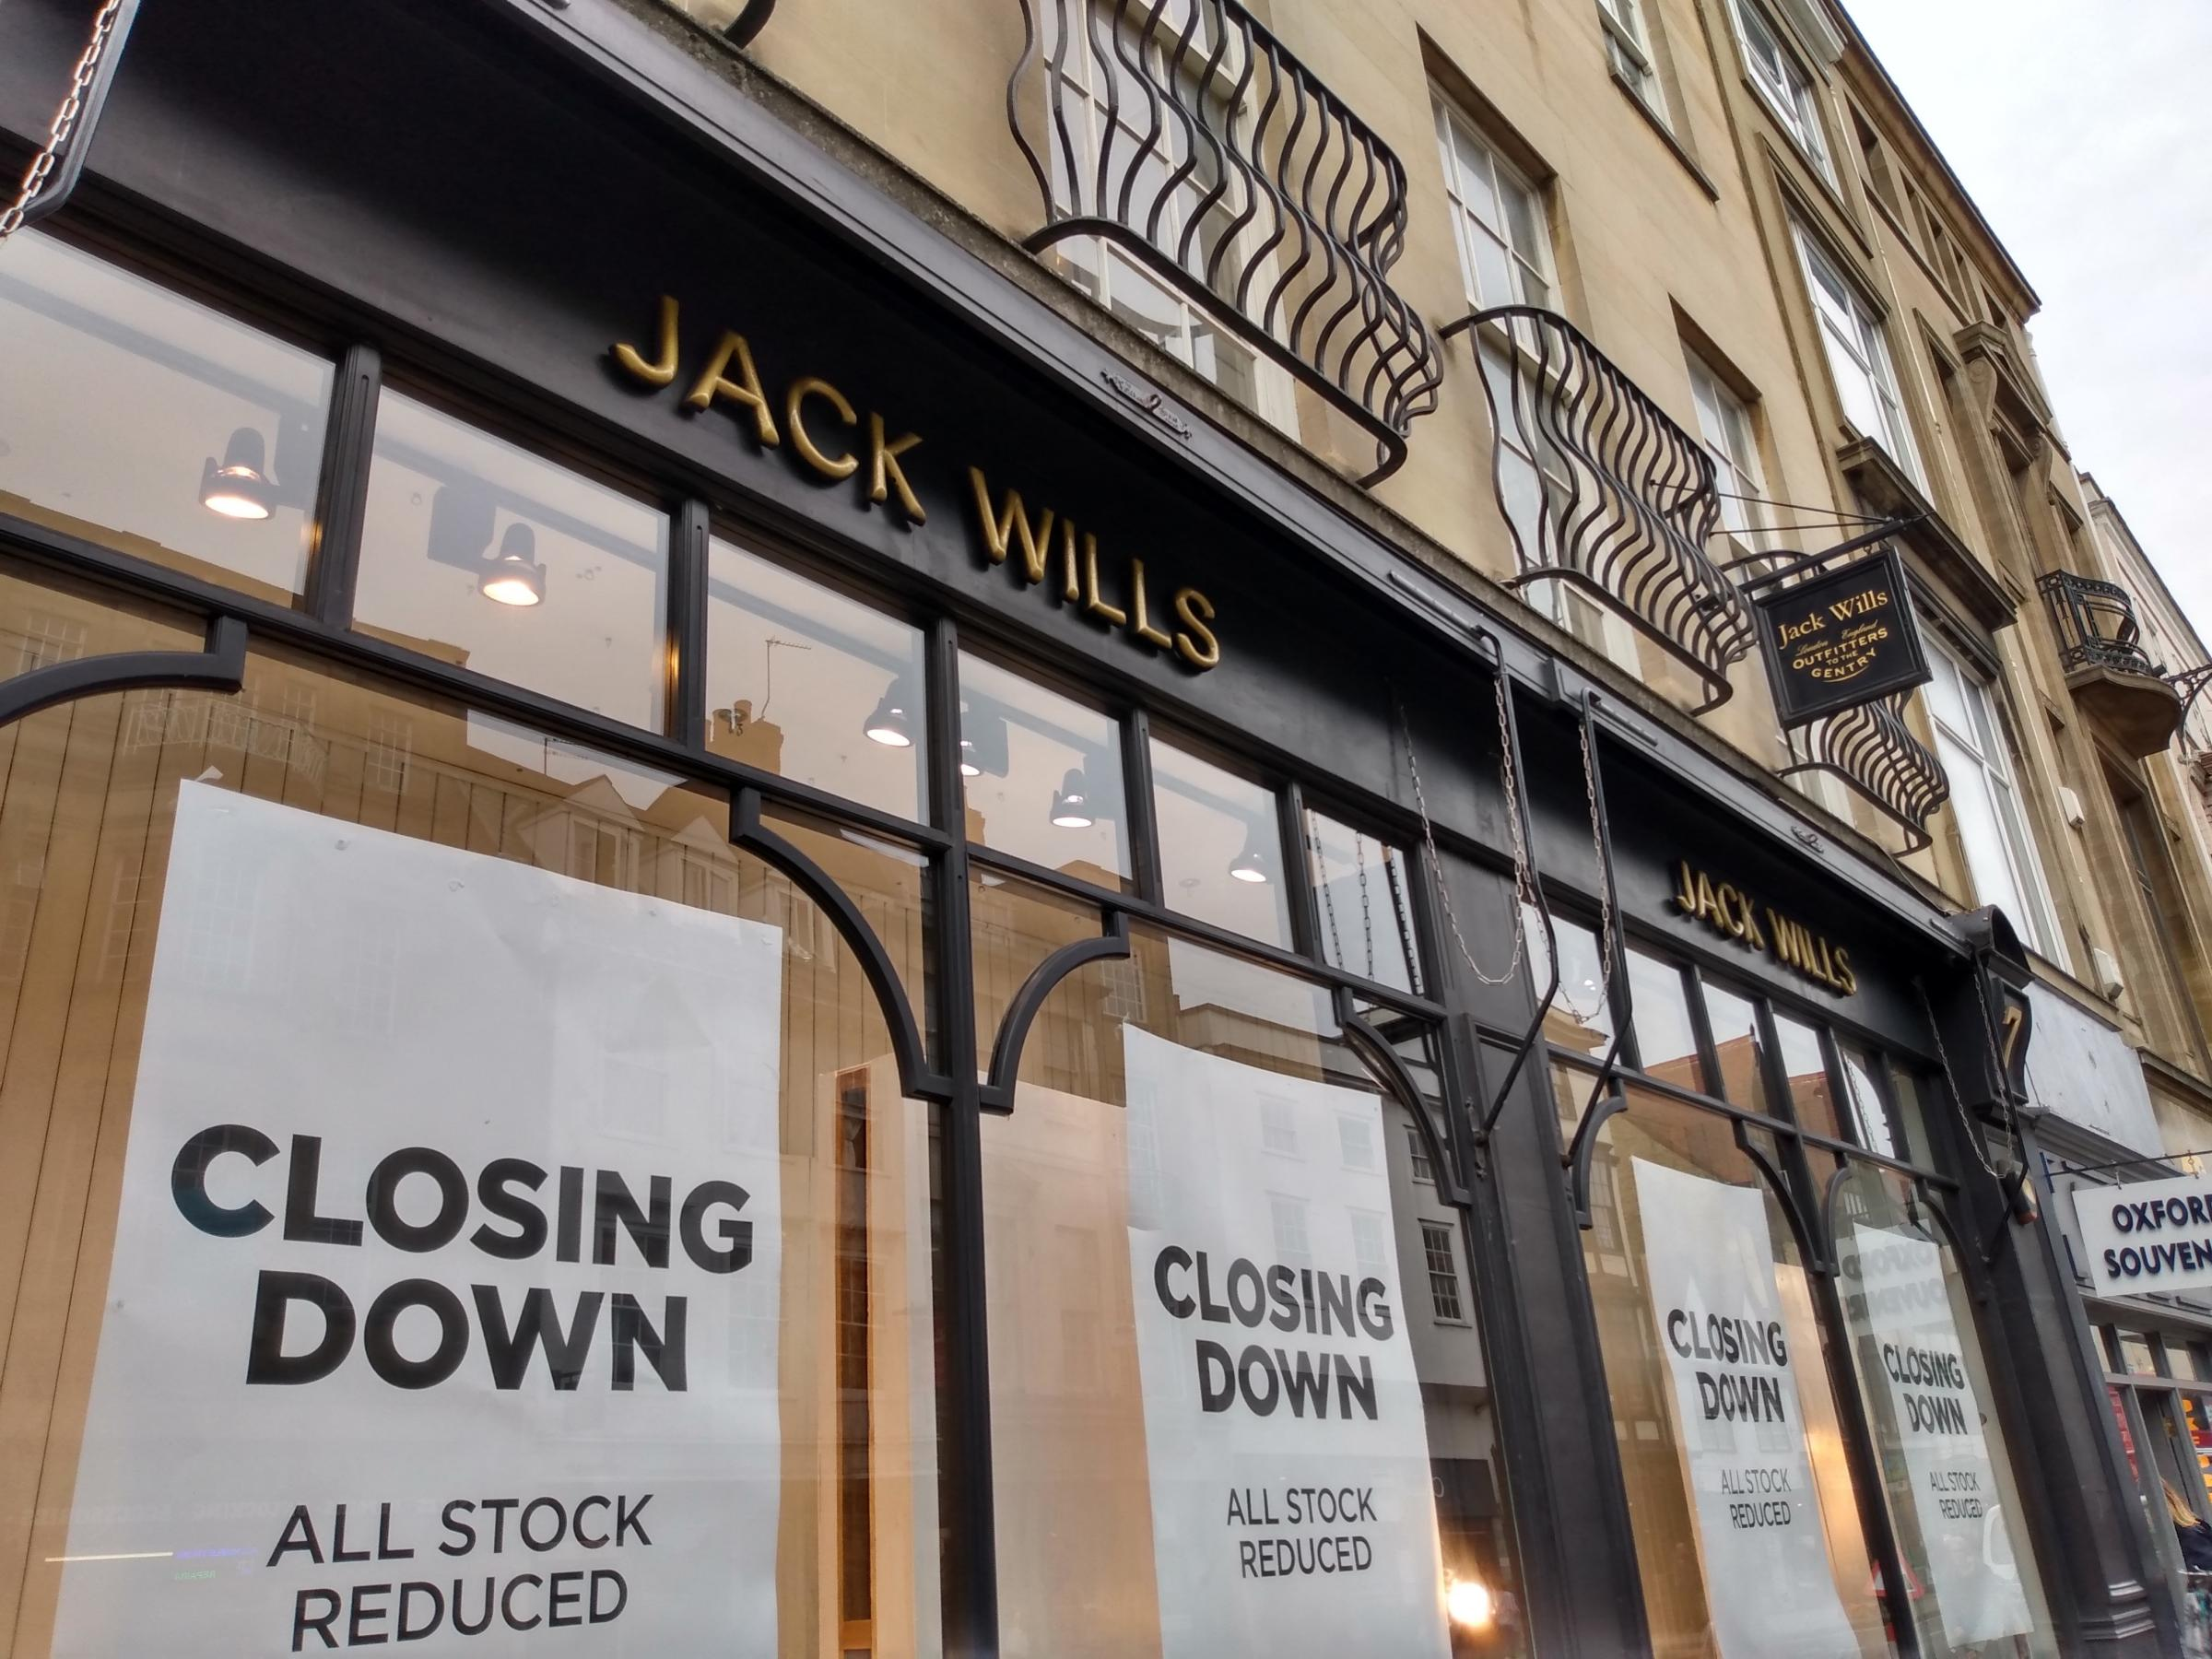 Jack Wills' closing down signs go up in Oxford